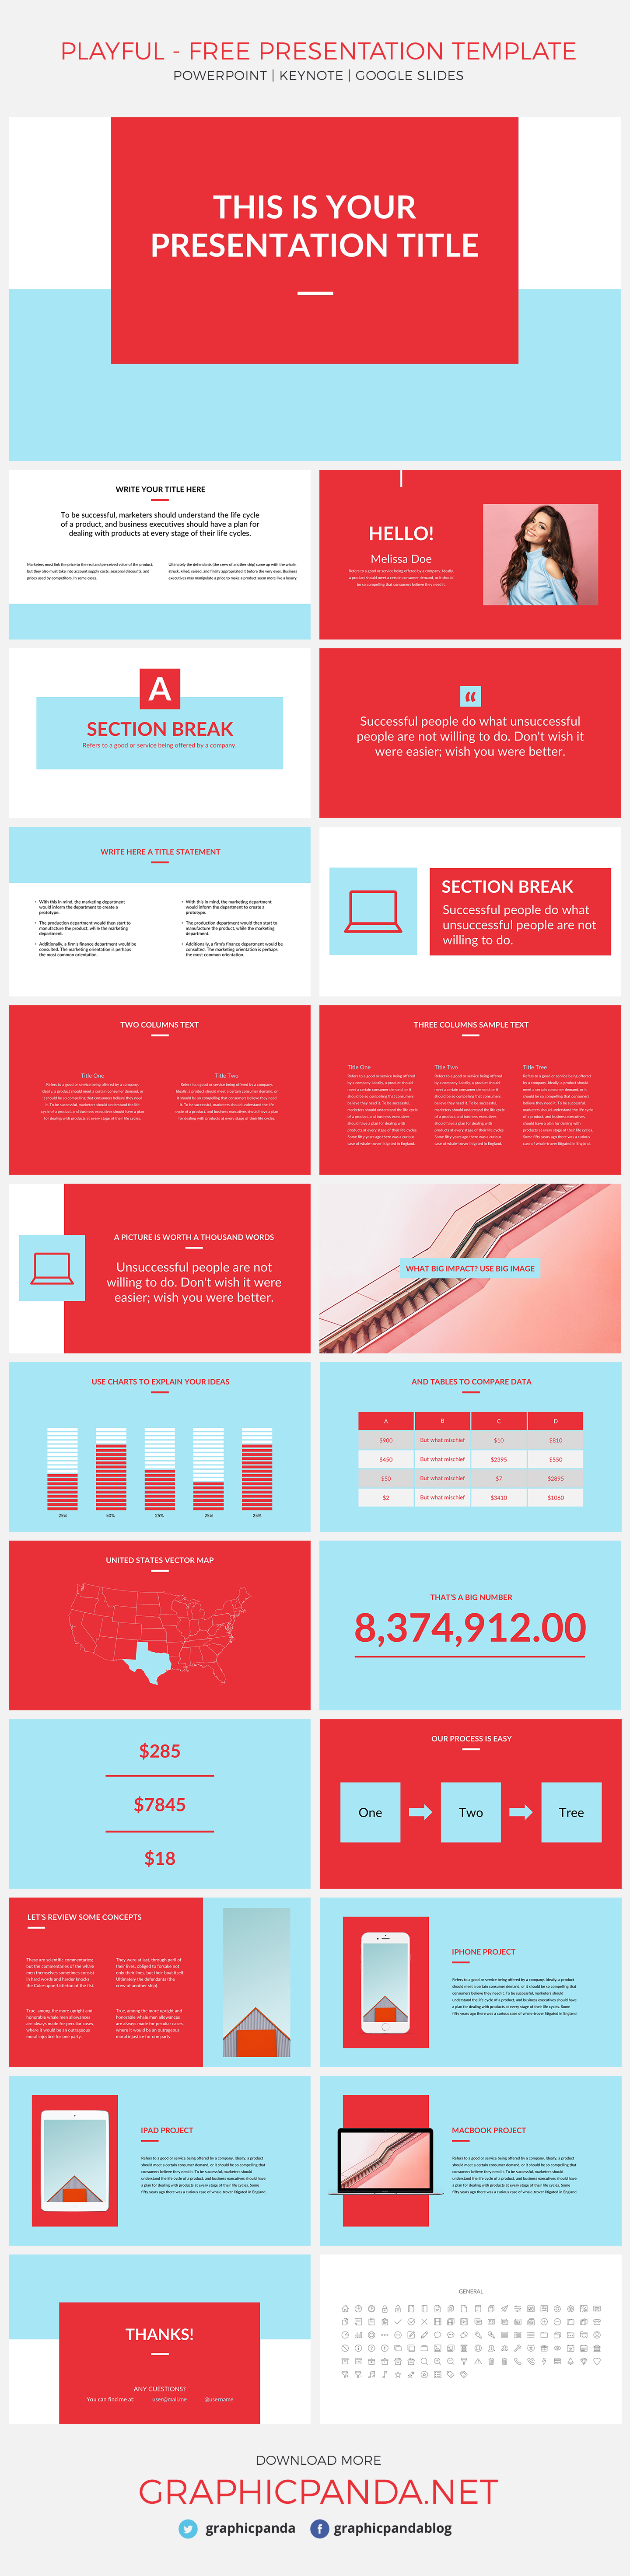 Playful free presentation template for powerpoint, Apple Keynote, and Google Slides is a colorful and simple to use pitch deck for you to use without any cost. It has a refreshing color scheme that isn't boring but keeps you looking professional. Each slide has a burst of color that makes your data pop out but not distract your audience from your overall point.